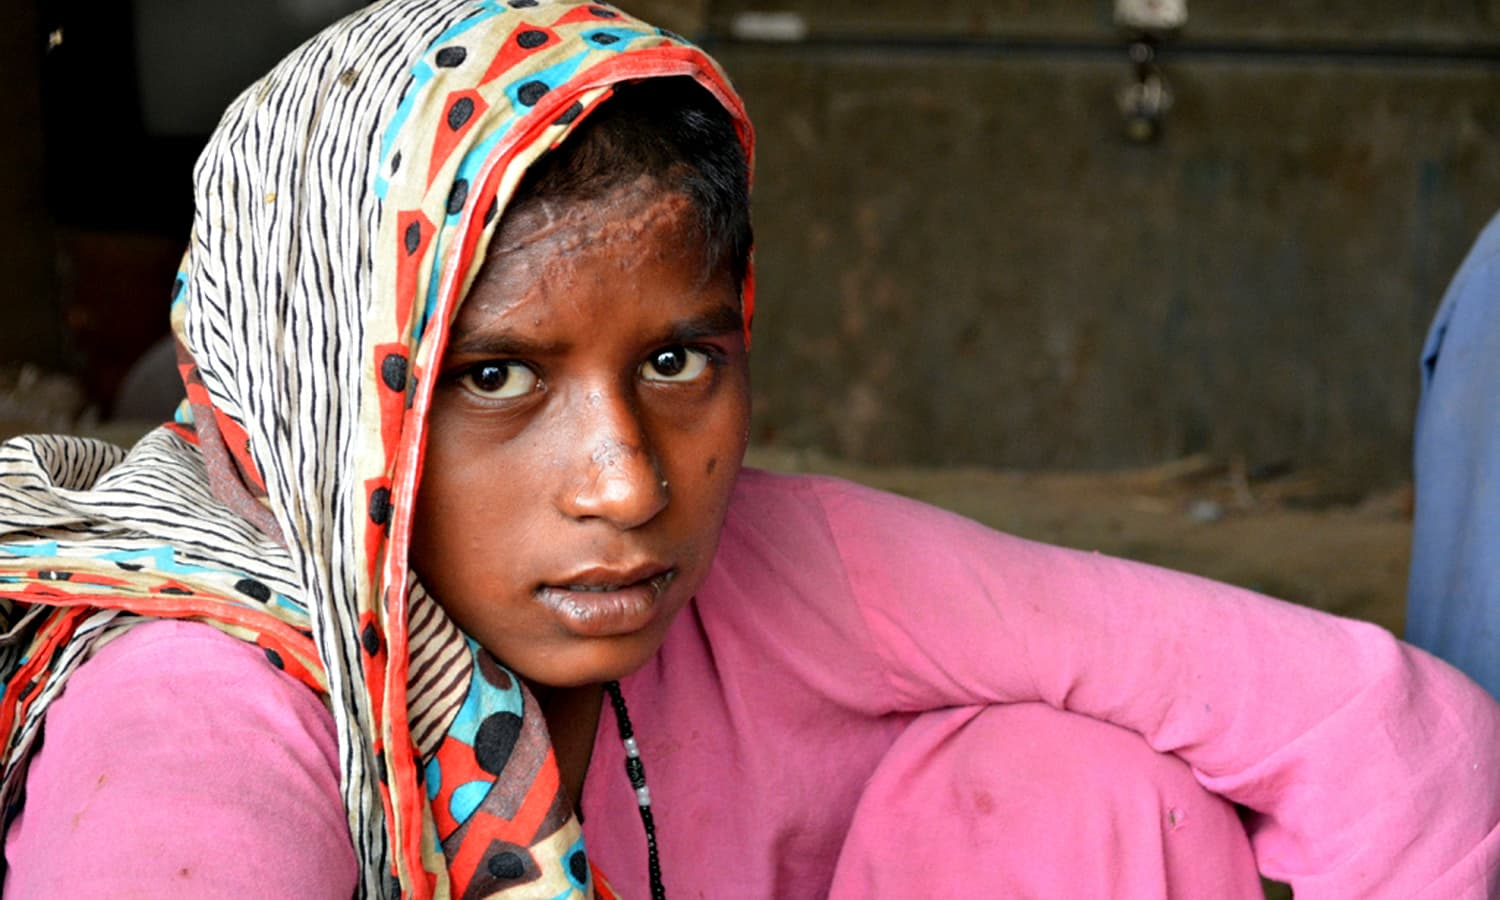 Teenager Radha was injured while crossing the road to fetch water. Women have to walk miles through the outskirts of Karachi to fetch drinking water for their families.